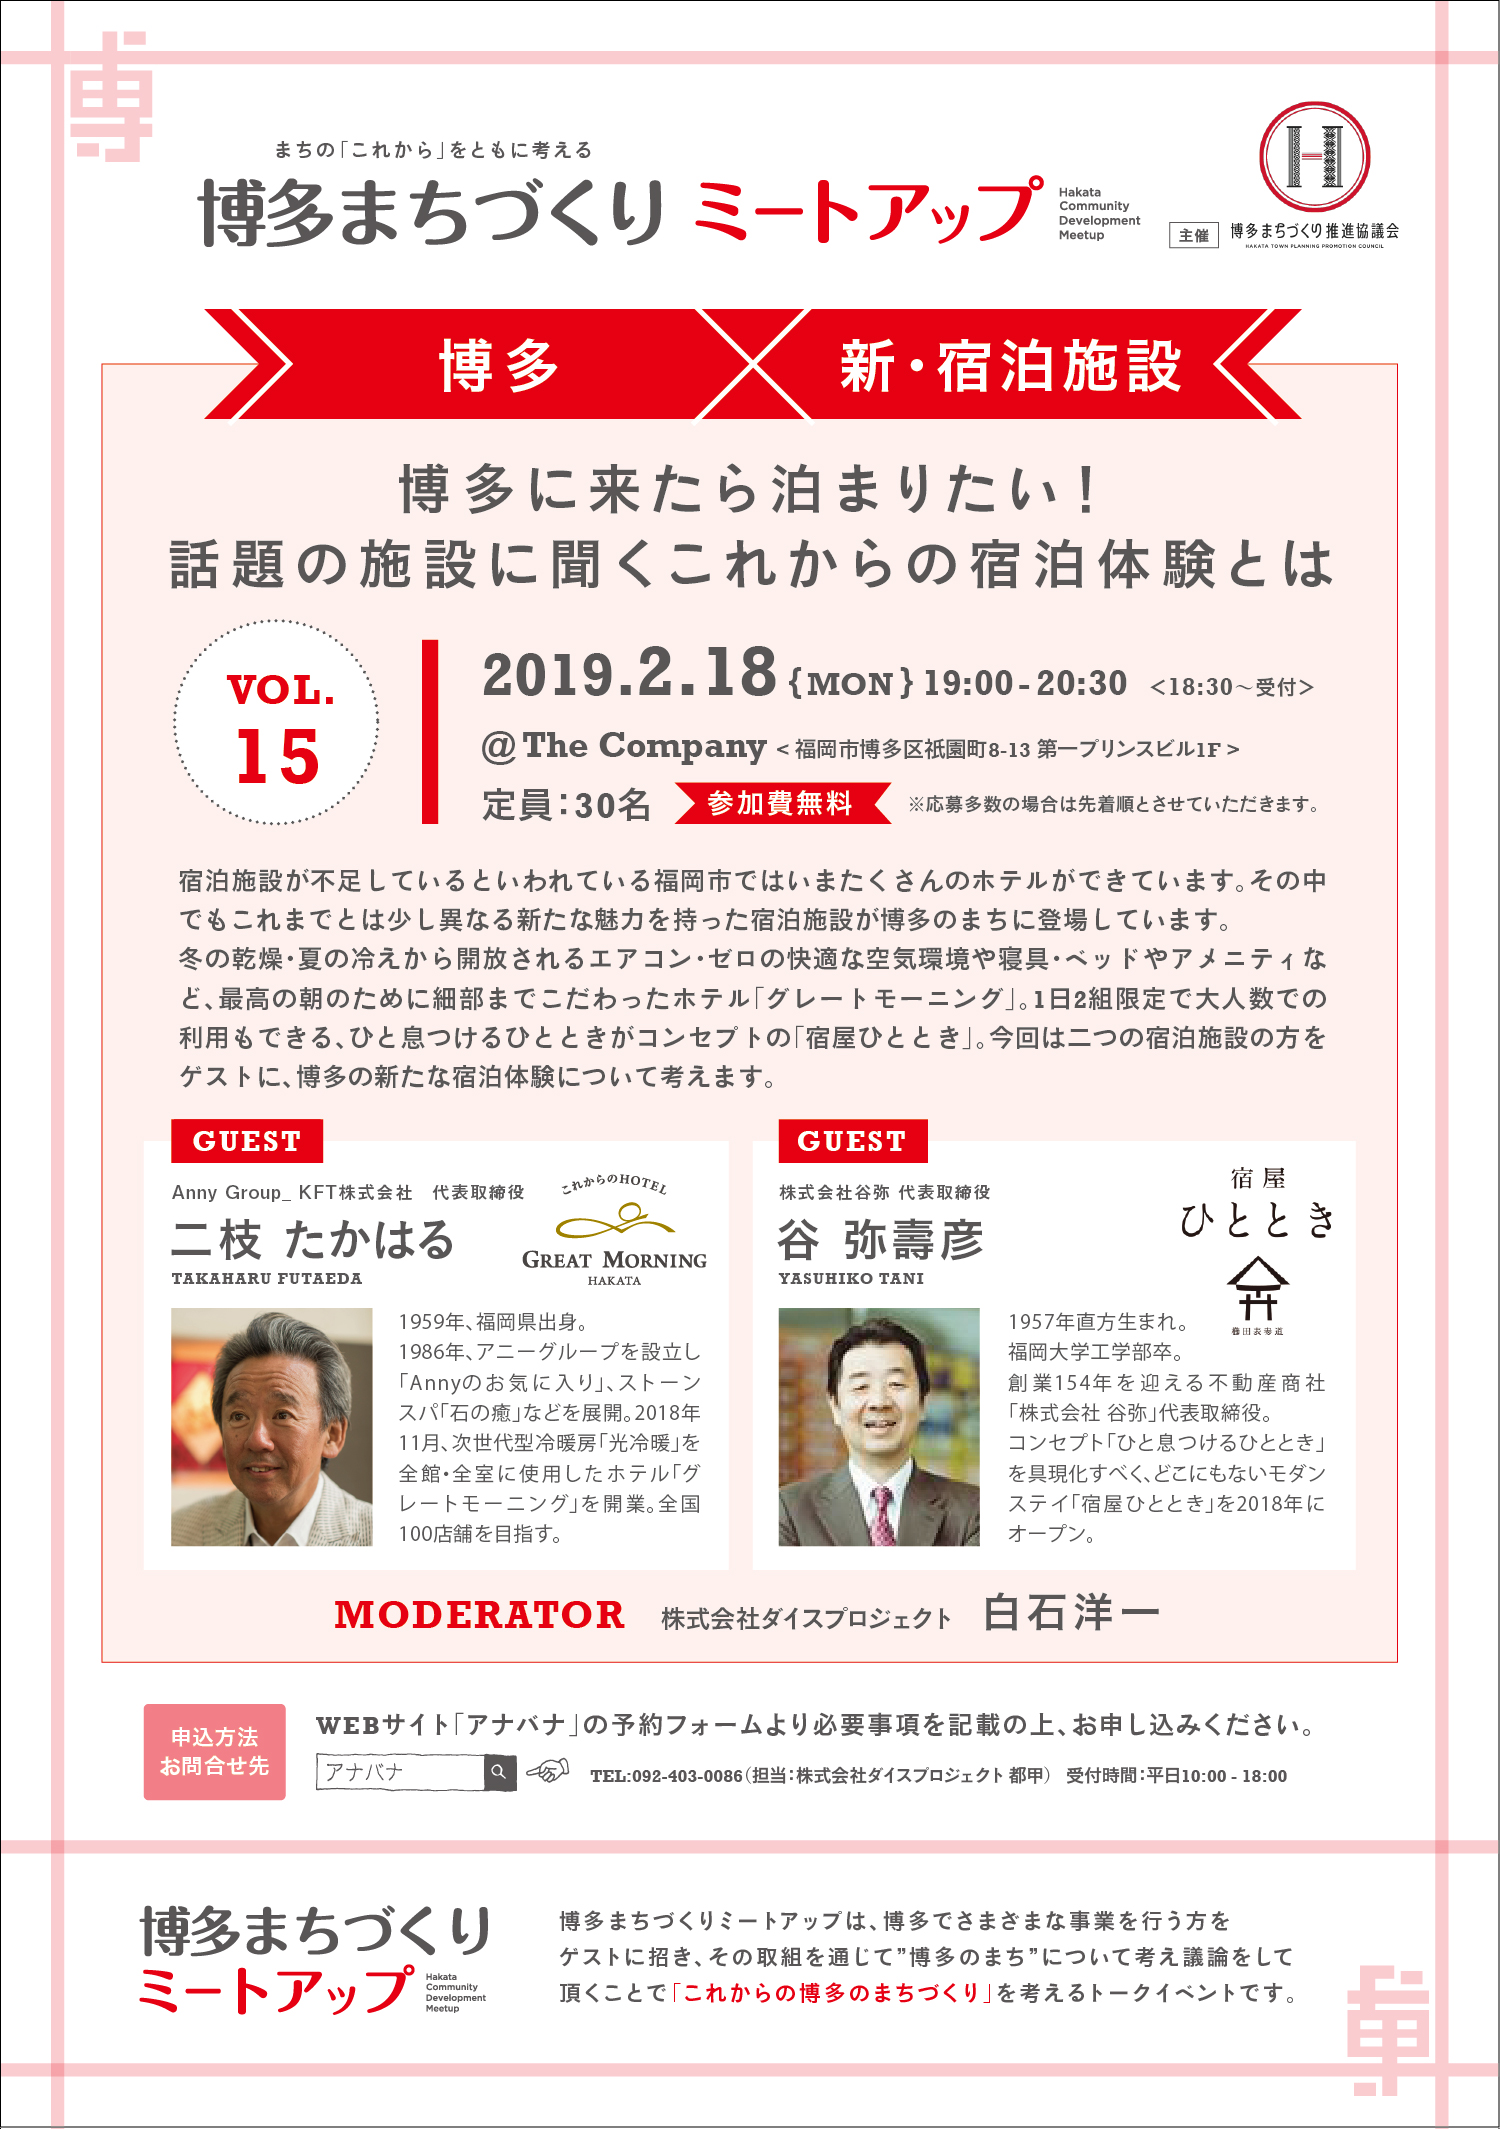 190203_meetup_flyer_vol15